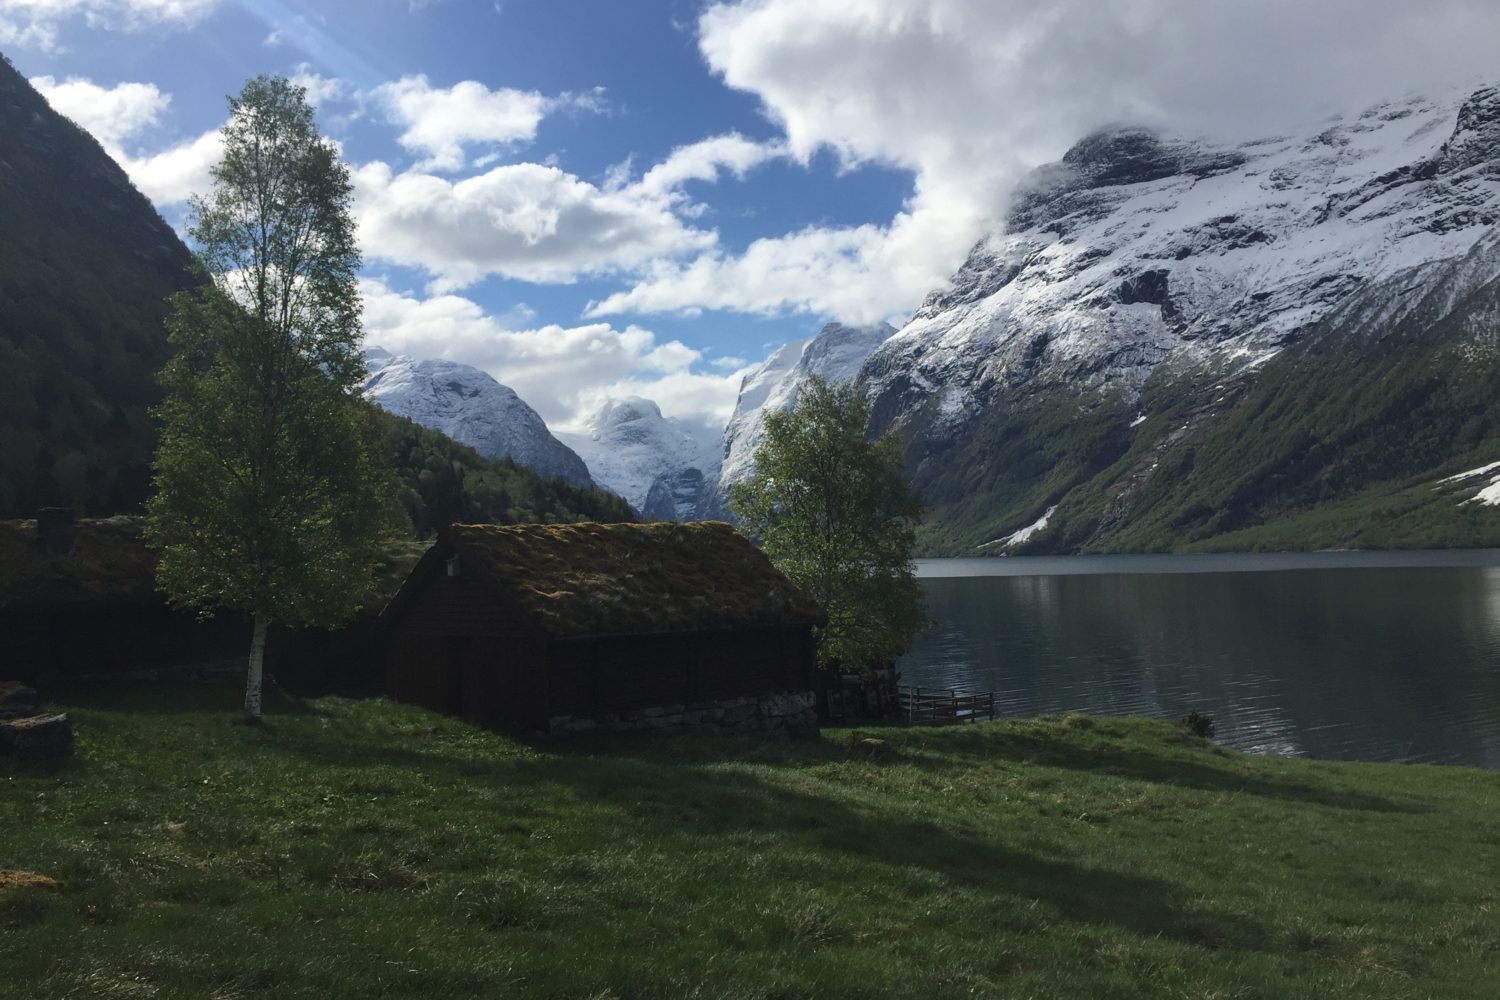 Incredible fjord views on this adventure!